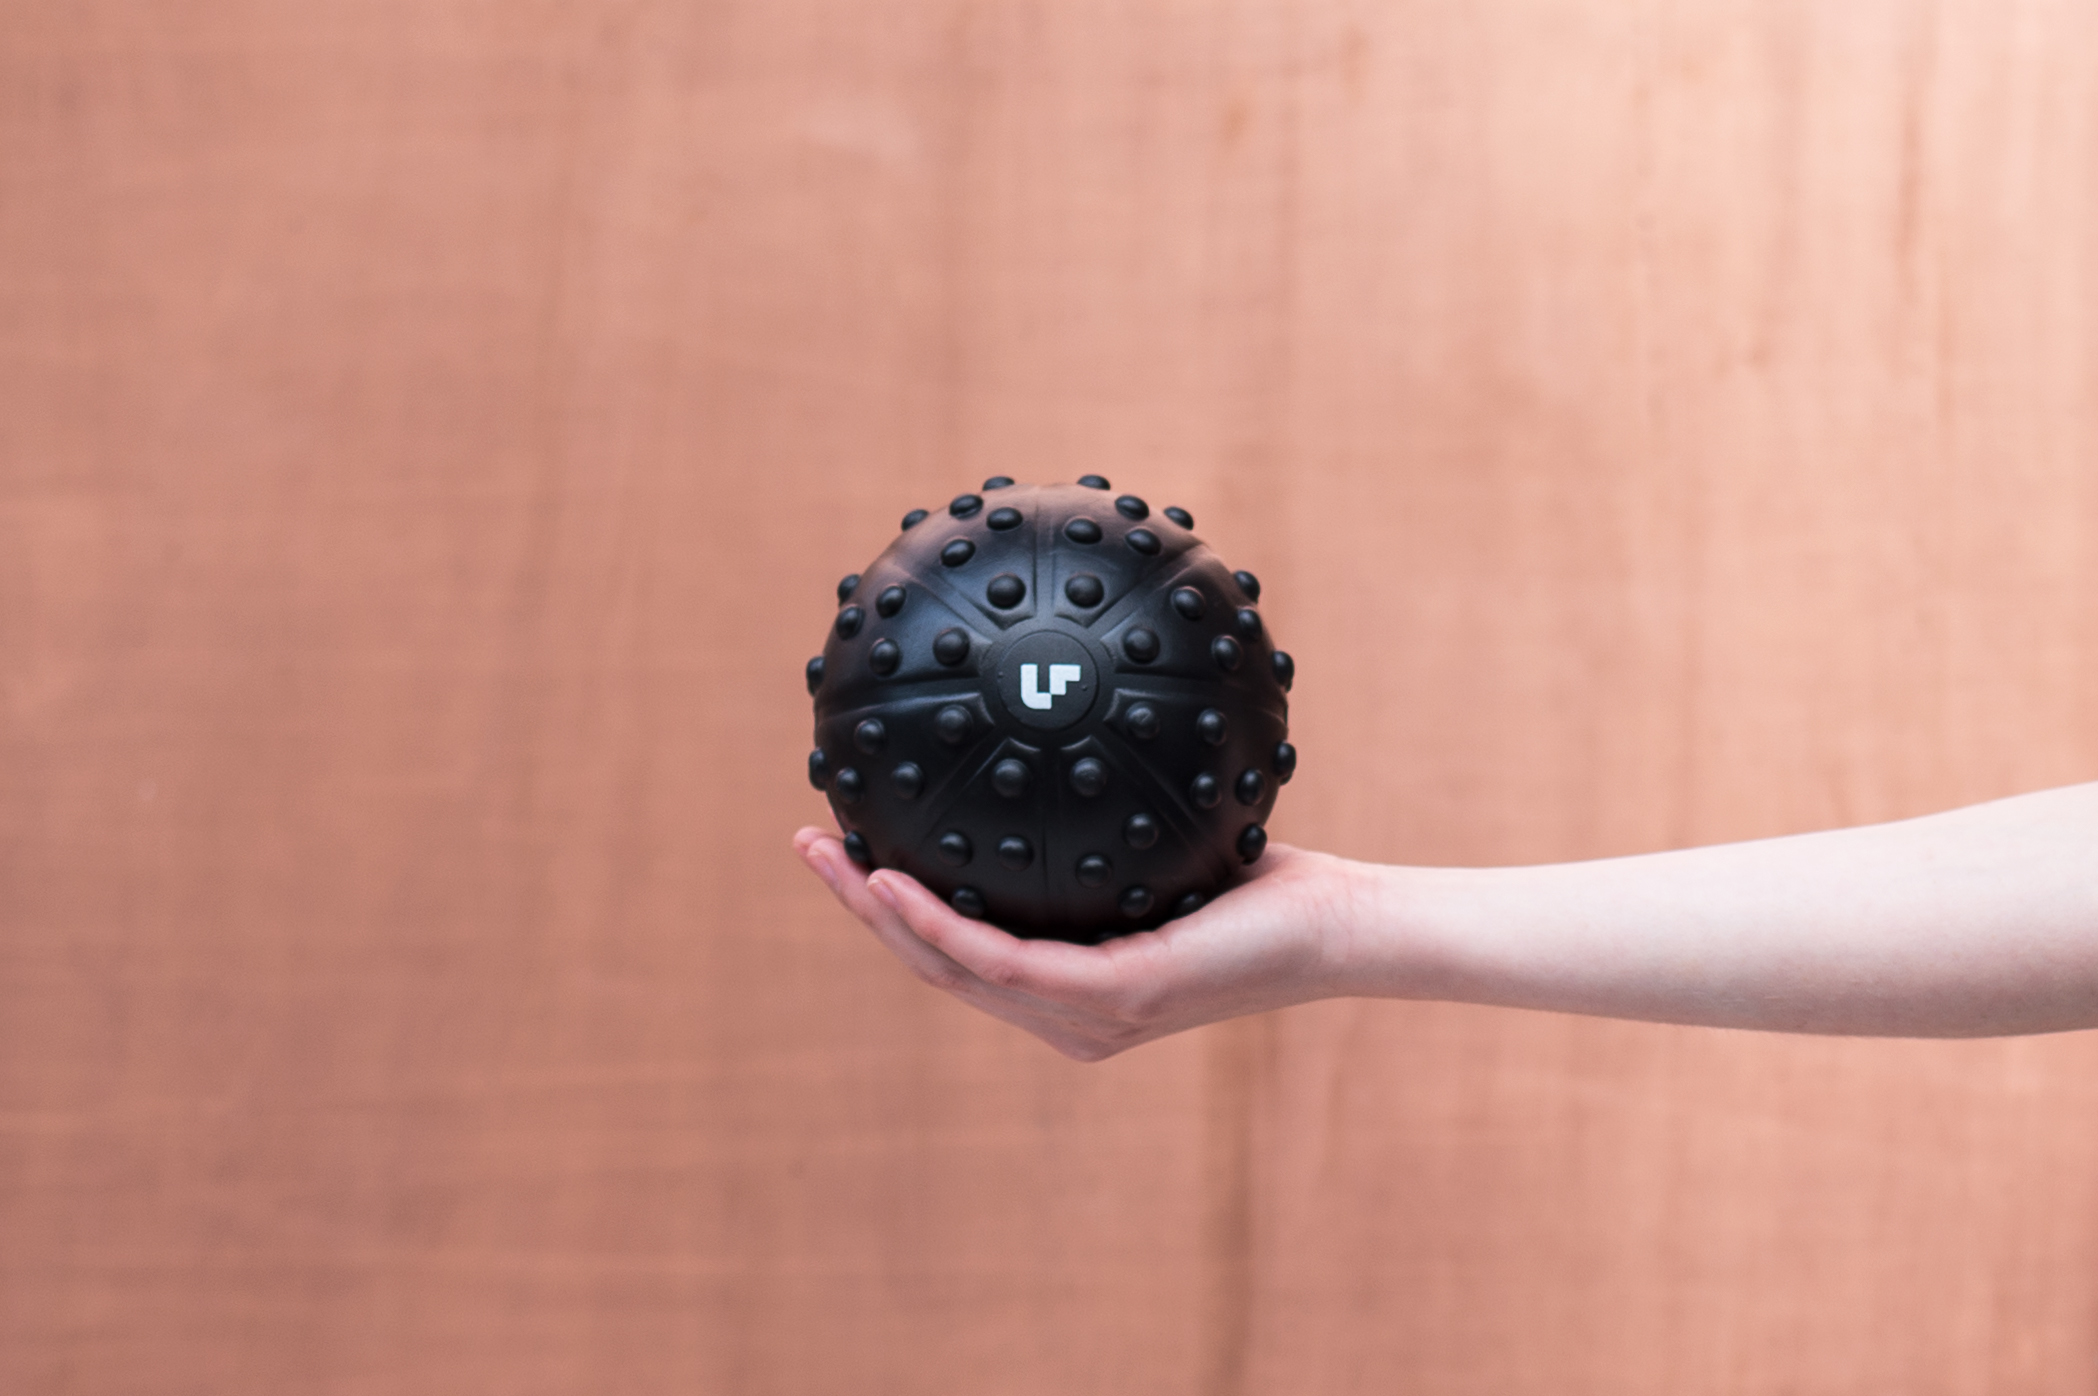 Get the Undivided Massage Ball  here .